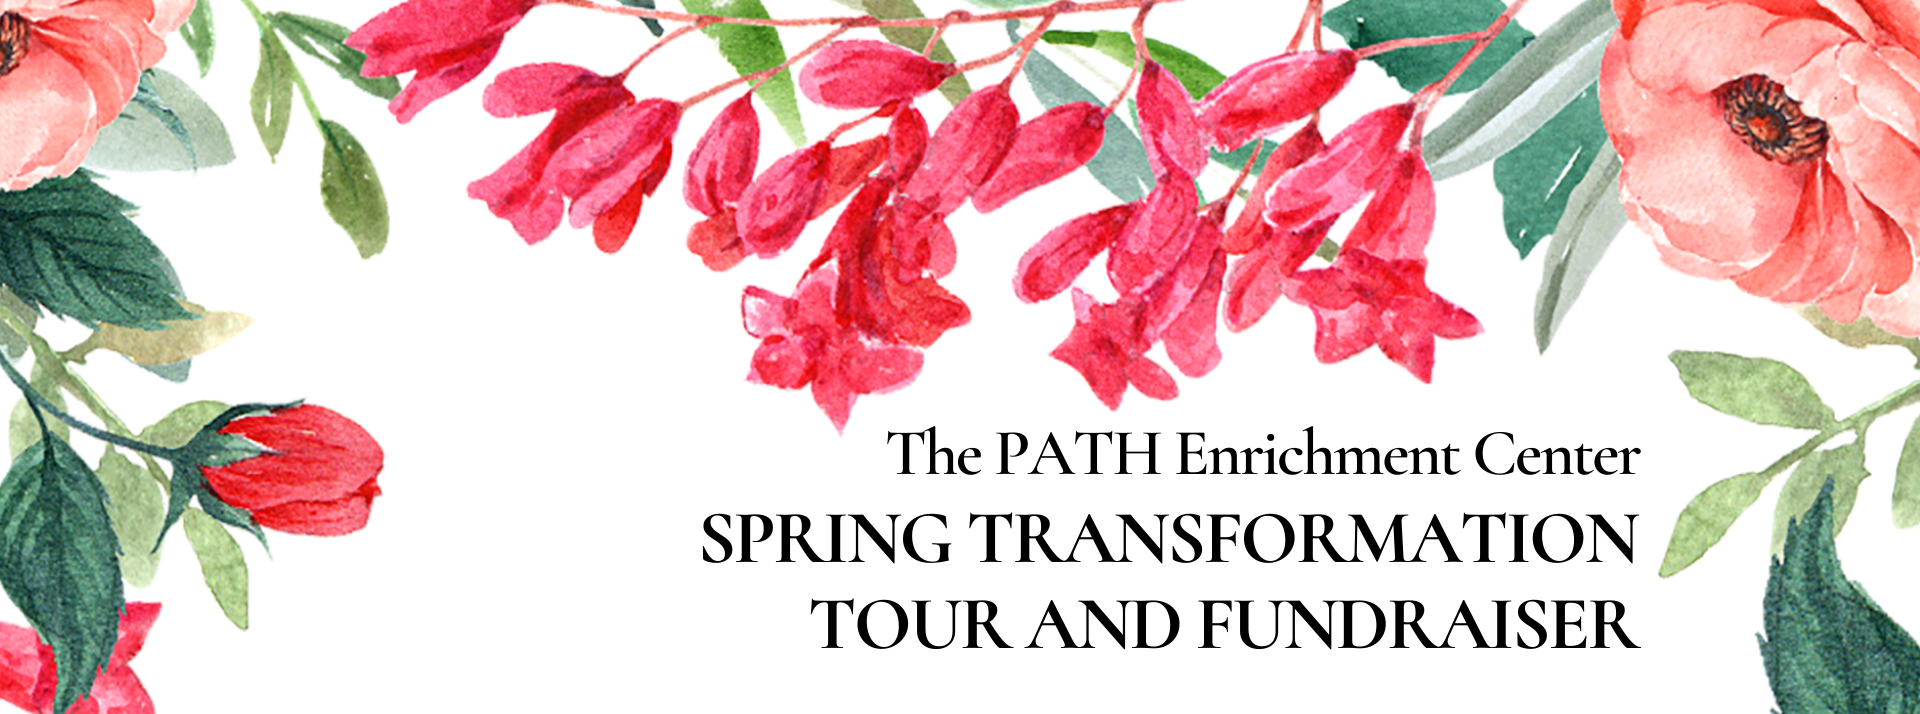 Spring Transformation Tour and Fundraiser